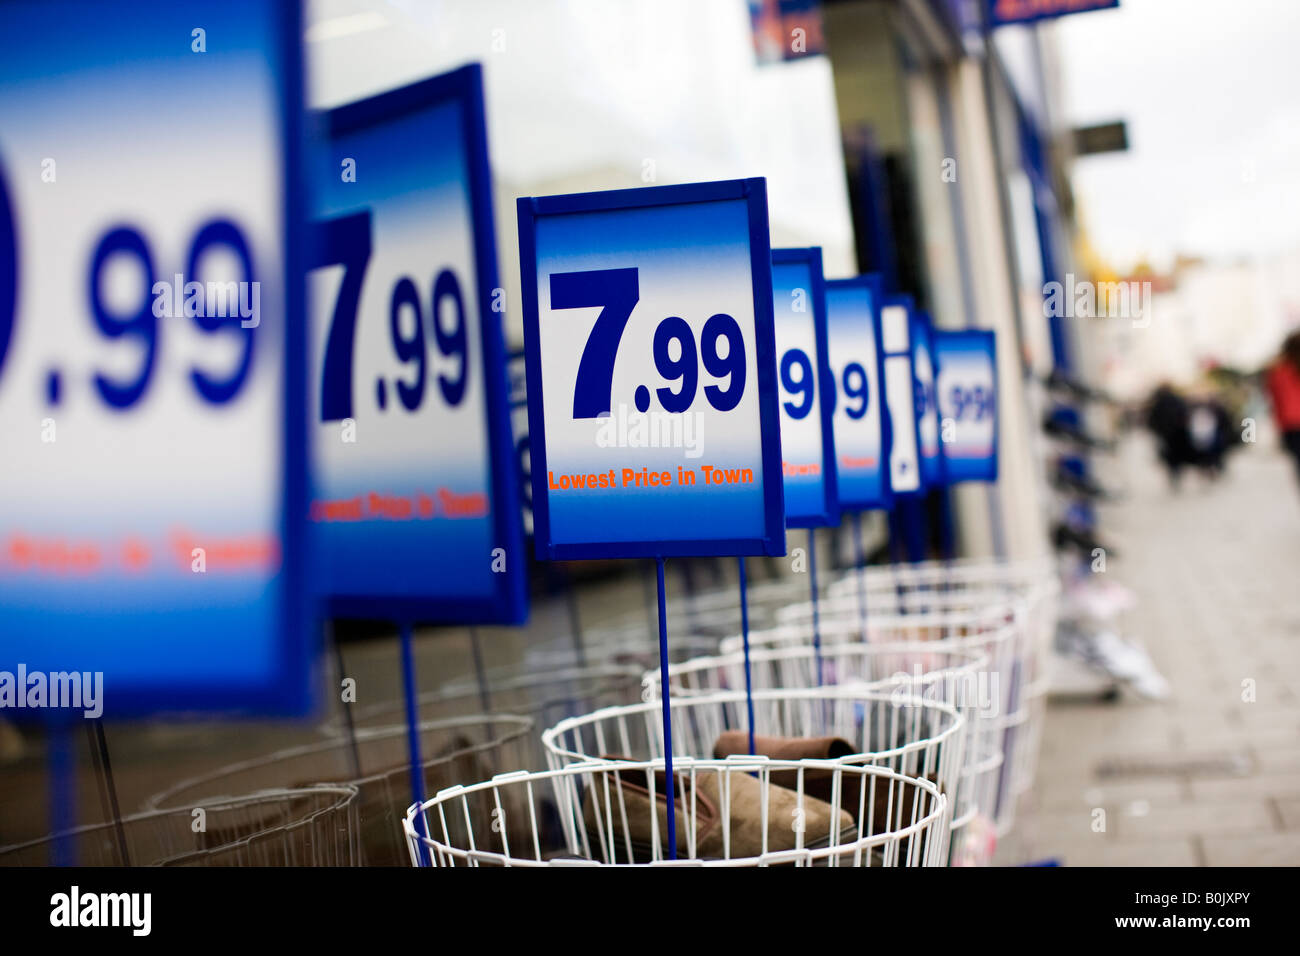 Prices on bargain bins outside a discount shoe shop, UK - Stock Image